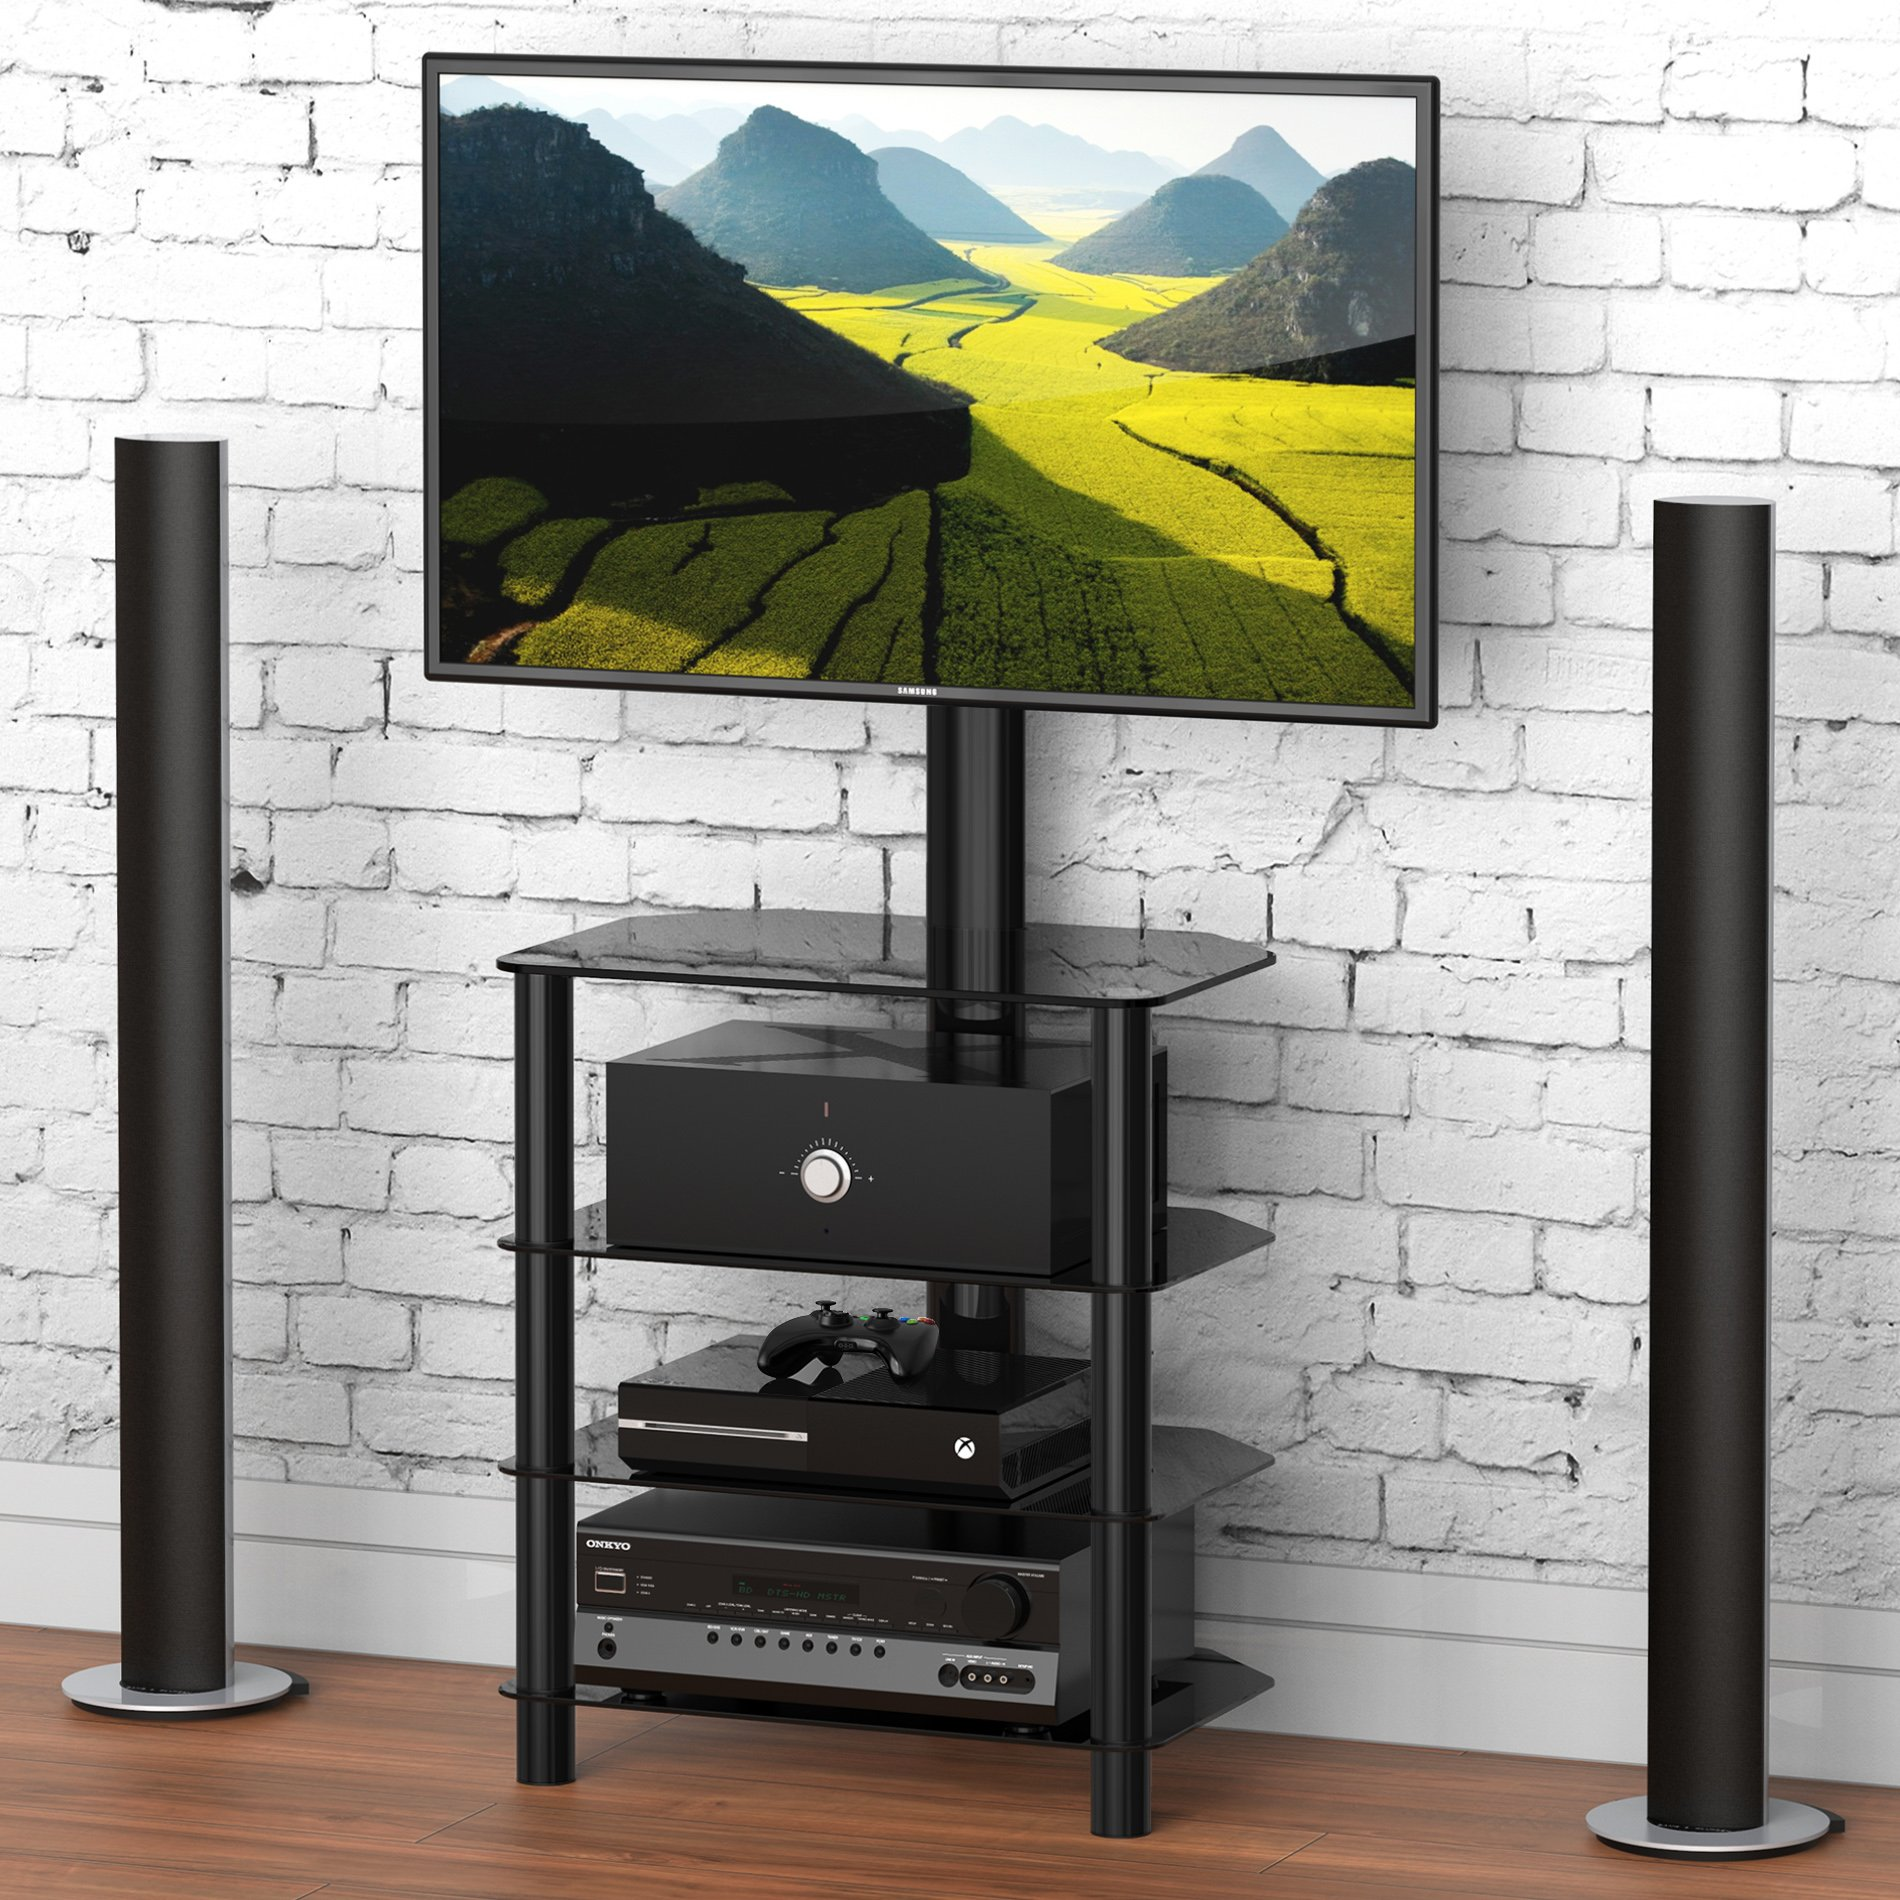 FITUEYES 4-tiers Media Component TV Stand with Mount Audio Shelf and Height Adjustable Bracket Suit for 32-55 inch LCD, LED Oled TVs or Curved TVs TW406001MB